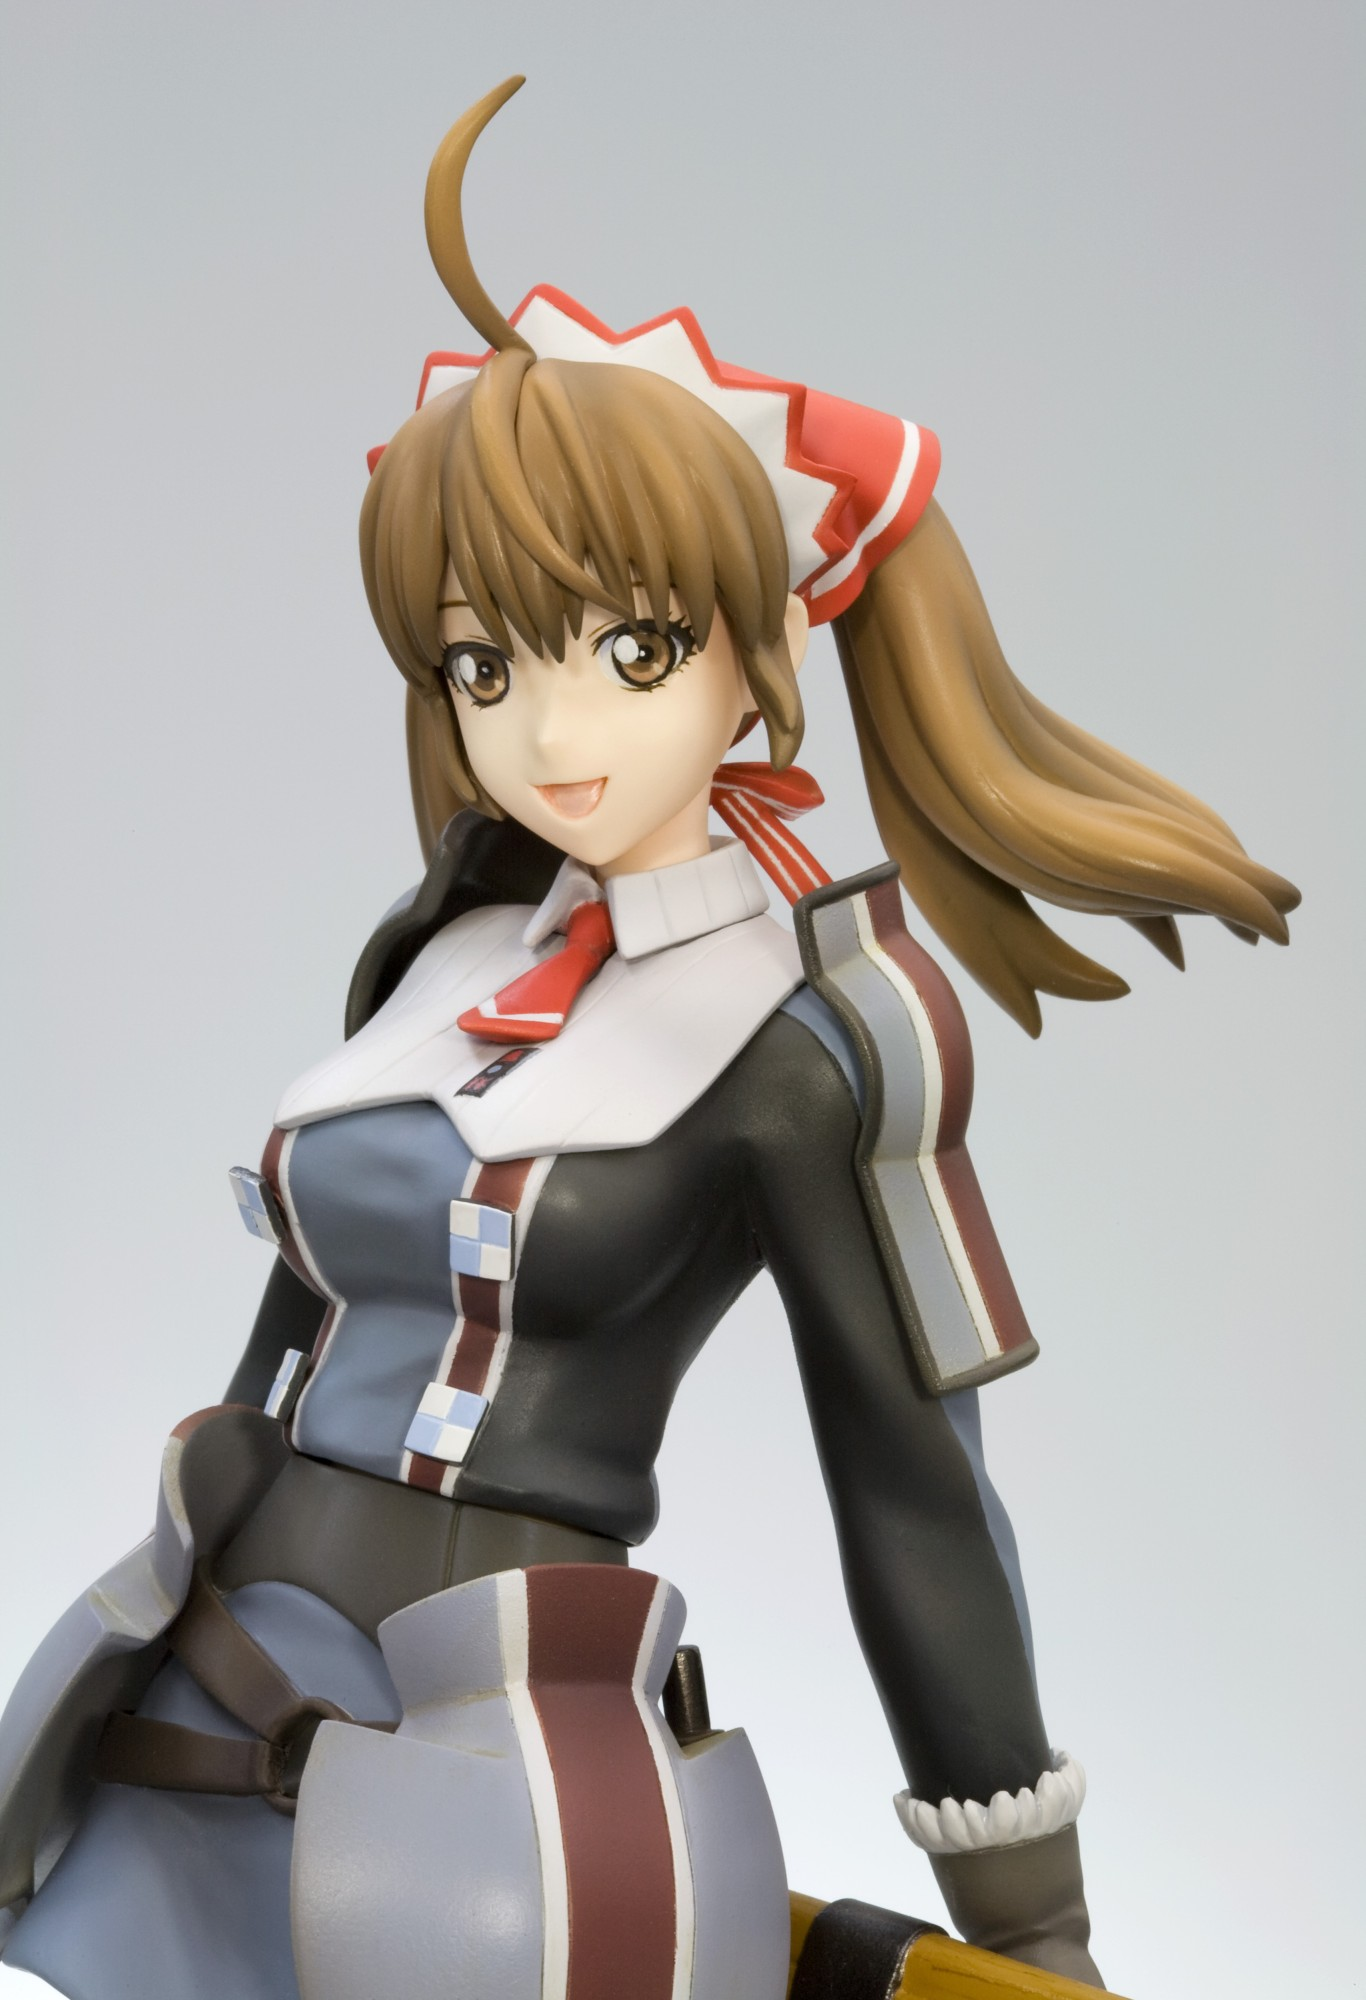 девушка с винтовкой Valkyria Chronicles Alicia Melchiott Figure